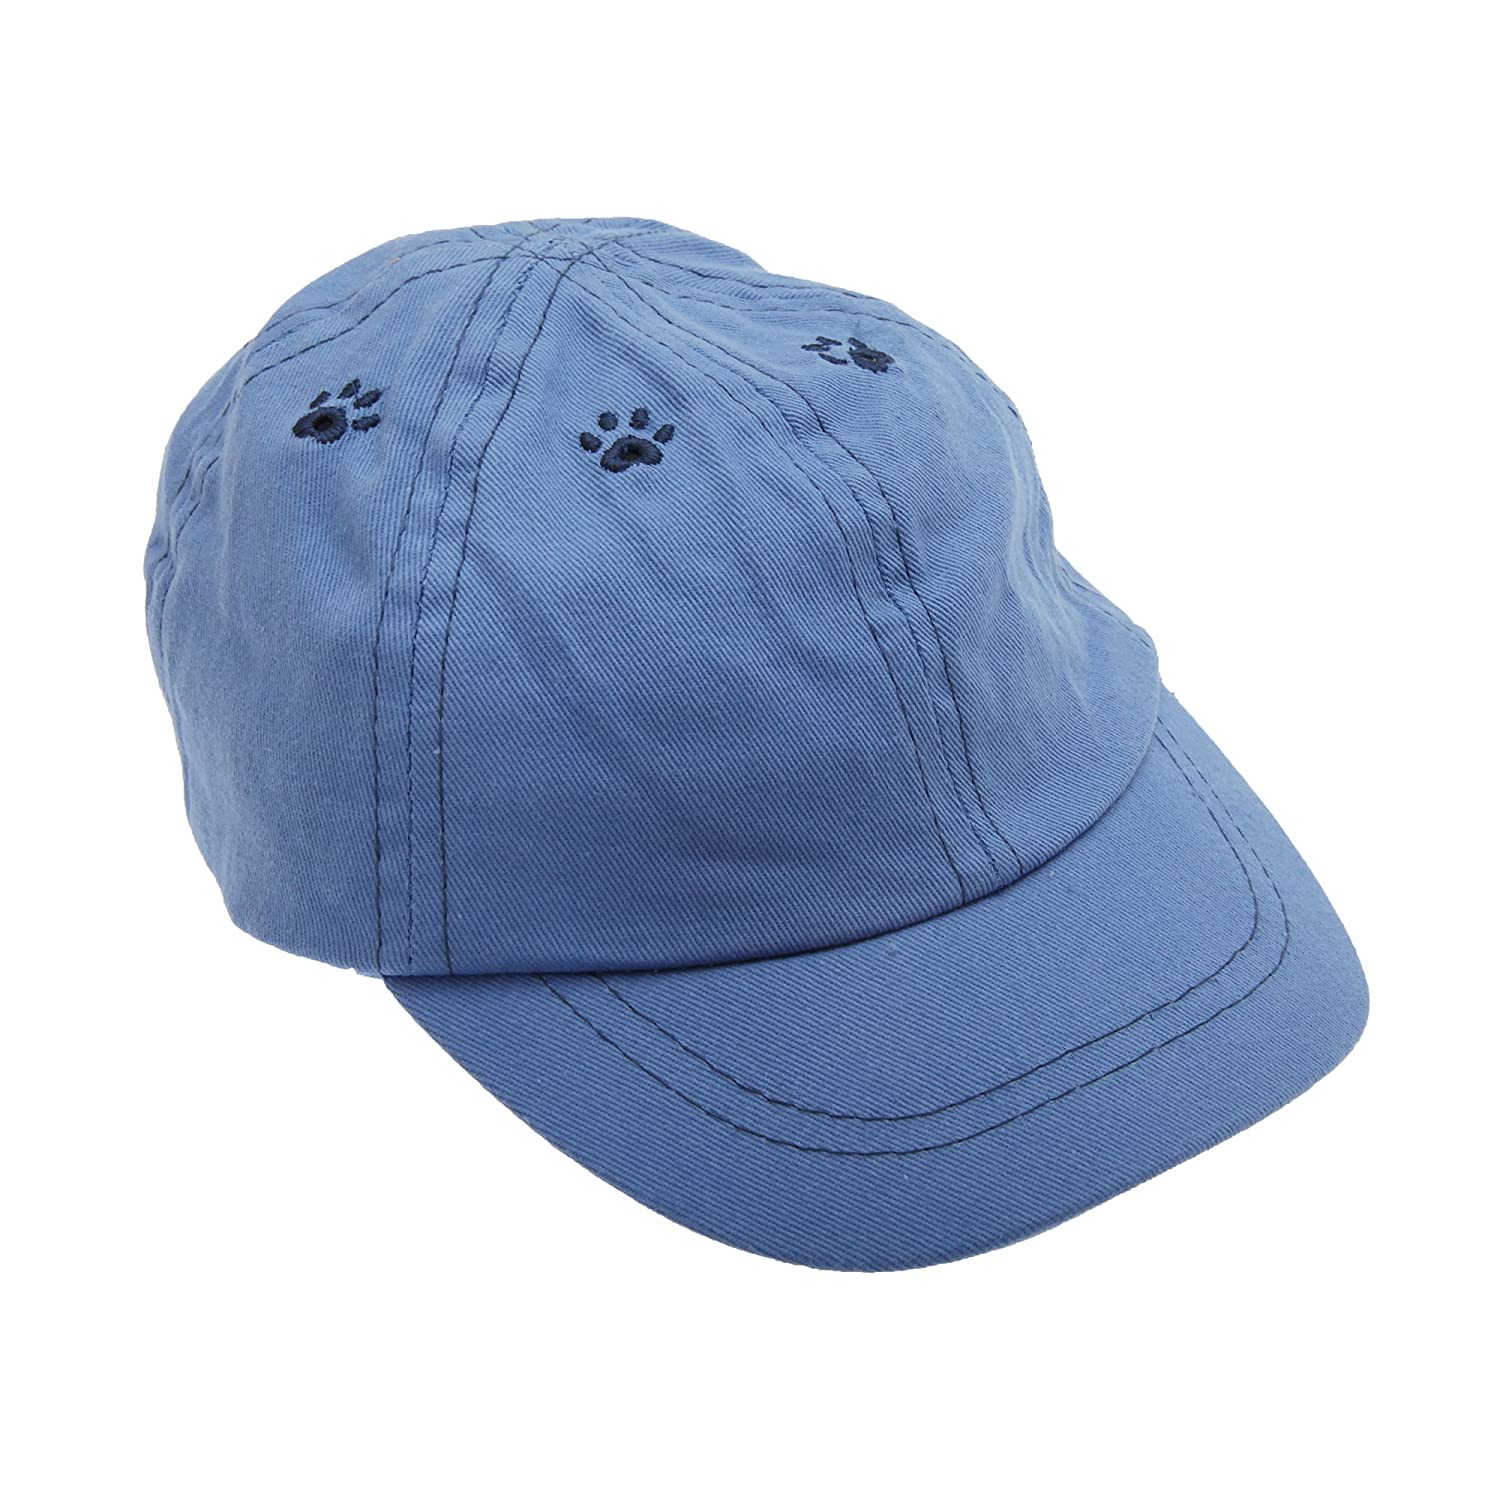 2261627a Amazon.com: Baby Boys Blue Baseball Cap With Eyelet Stitching Detail (18-24  Months) (Blue): Baby